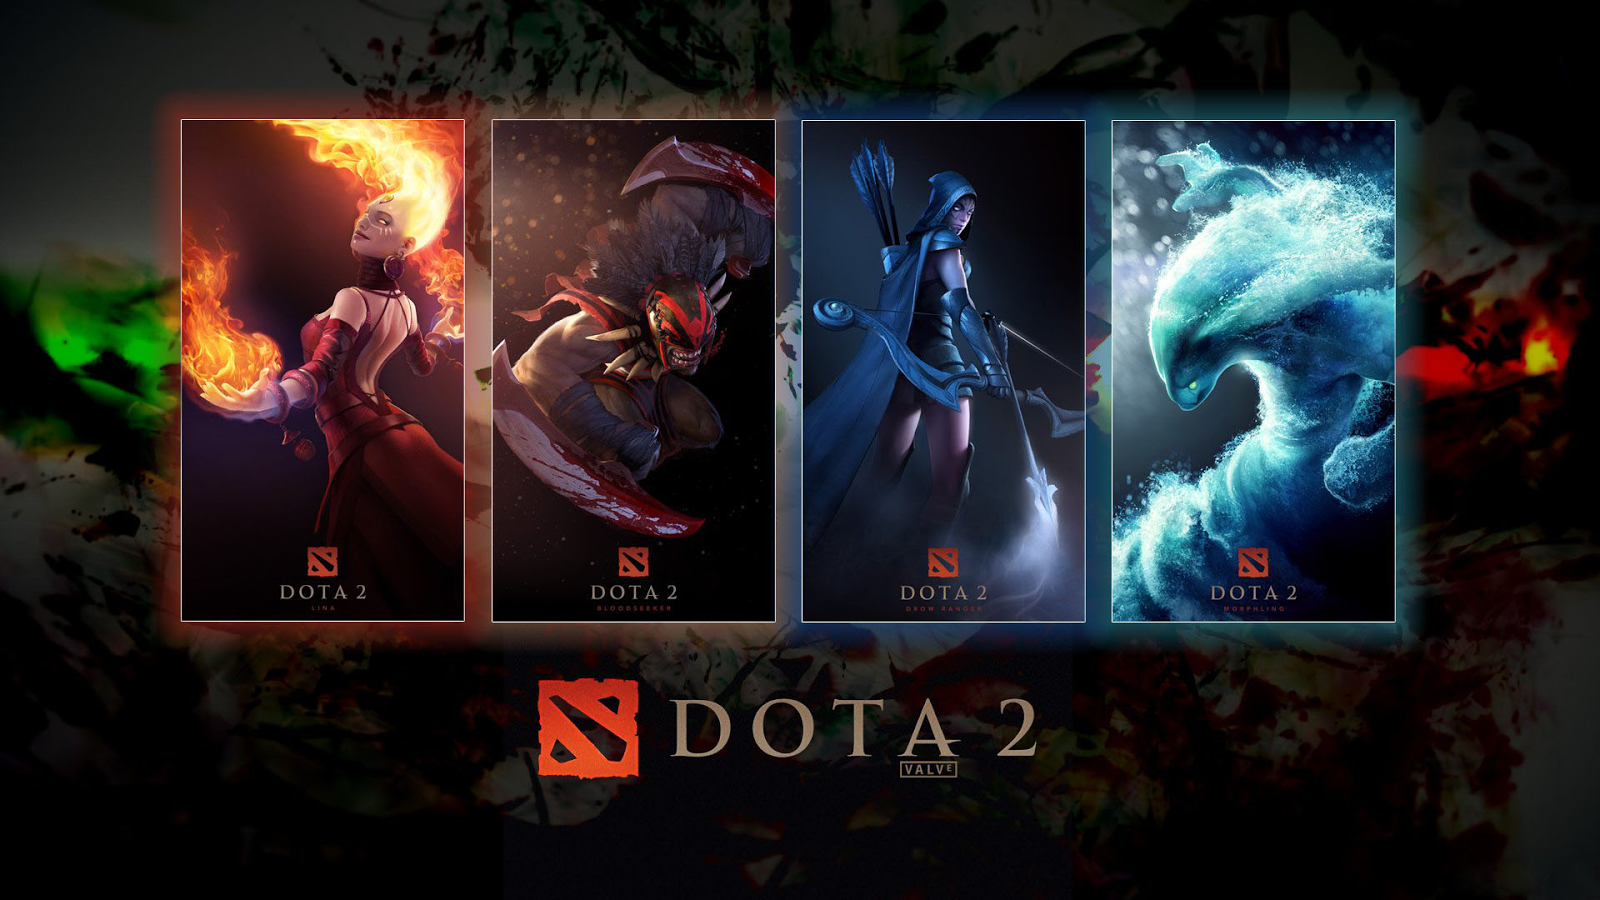 Dota 2 Game Download Free For PC Full Version - Download Pc Games